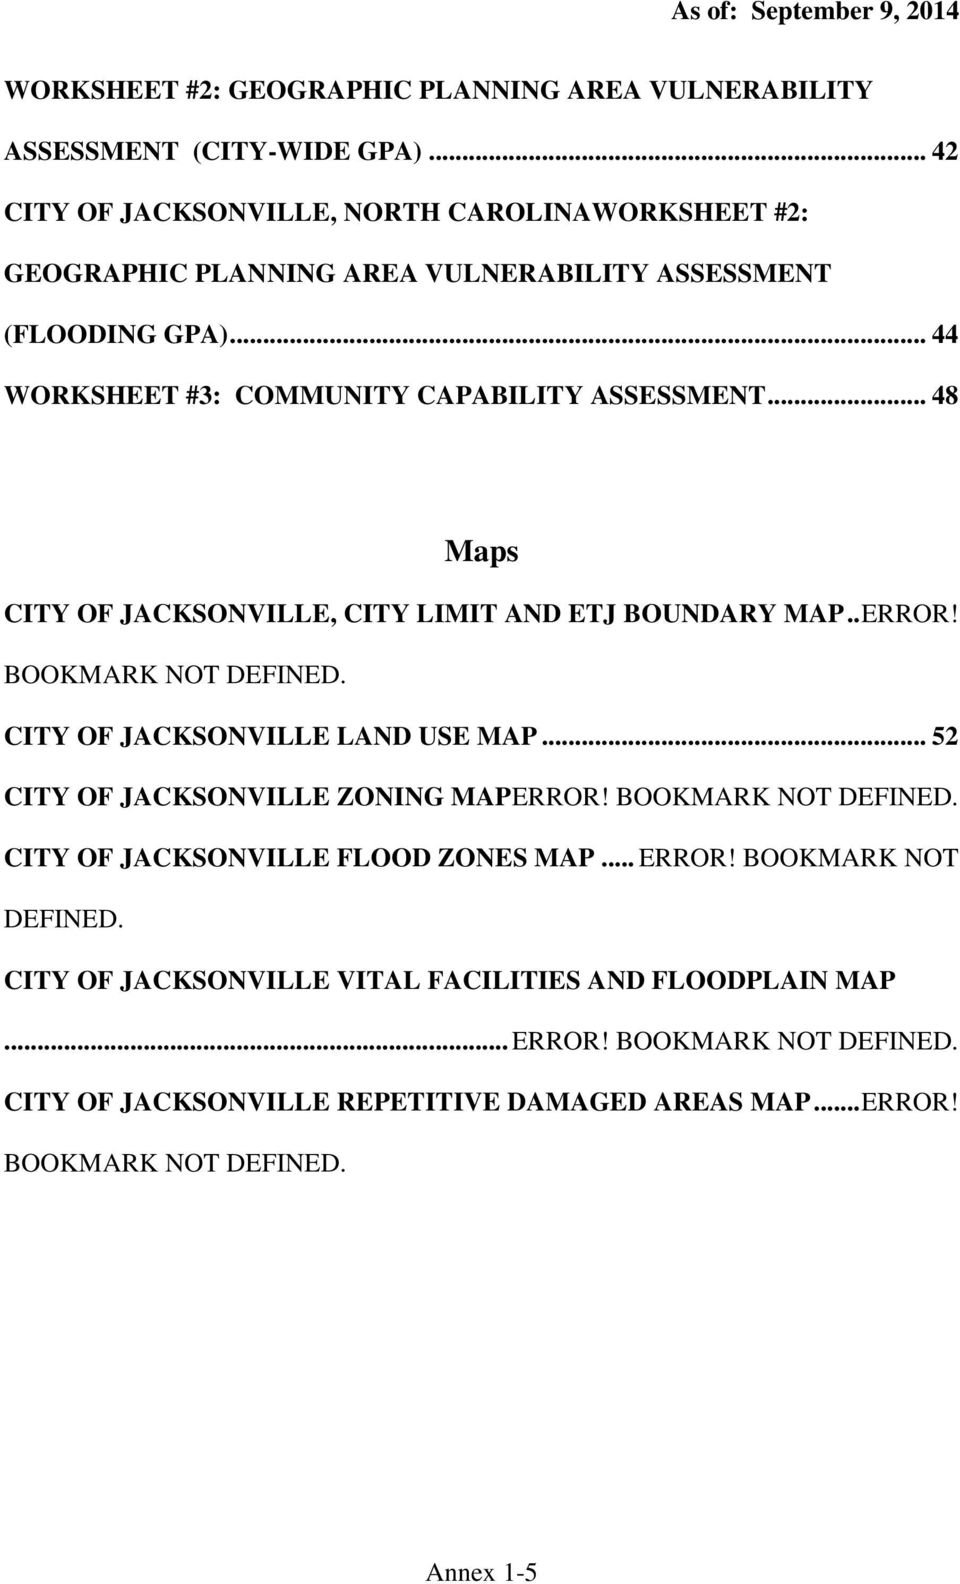 .. 48 Maps CITY OF JACKSONVILLE, CITY LIMIT AND ETJ BOUNDARY MAP.. ERROR! BOOKMARK NOT DEFINED. CITY OF JACKSONVILLE LAND USE MAP... 52 CITY OF JACKSONVILLE ZONING MAP ERROR!